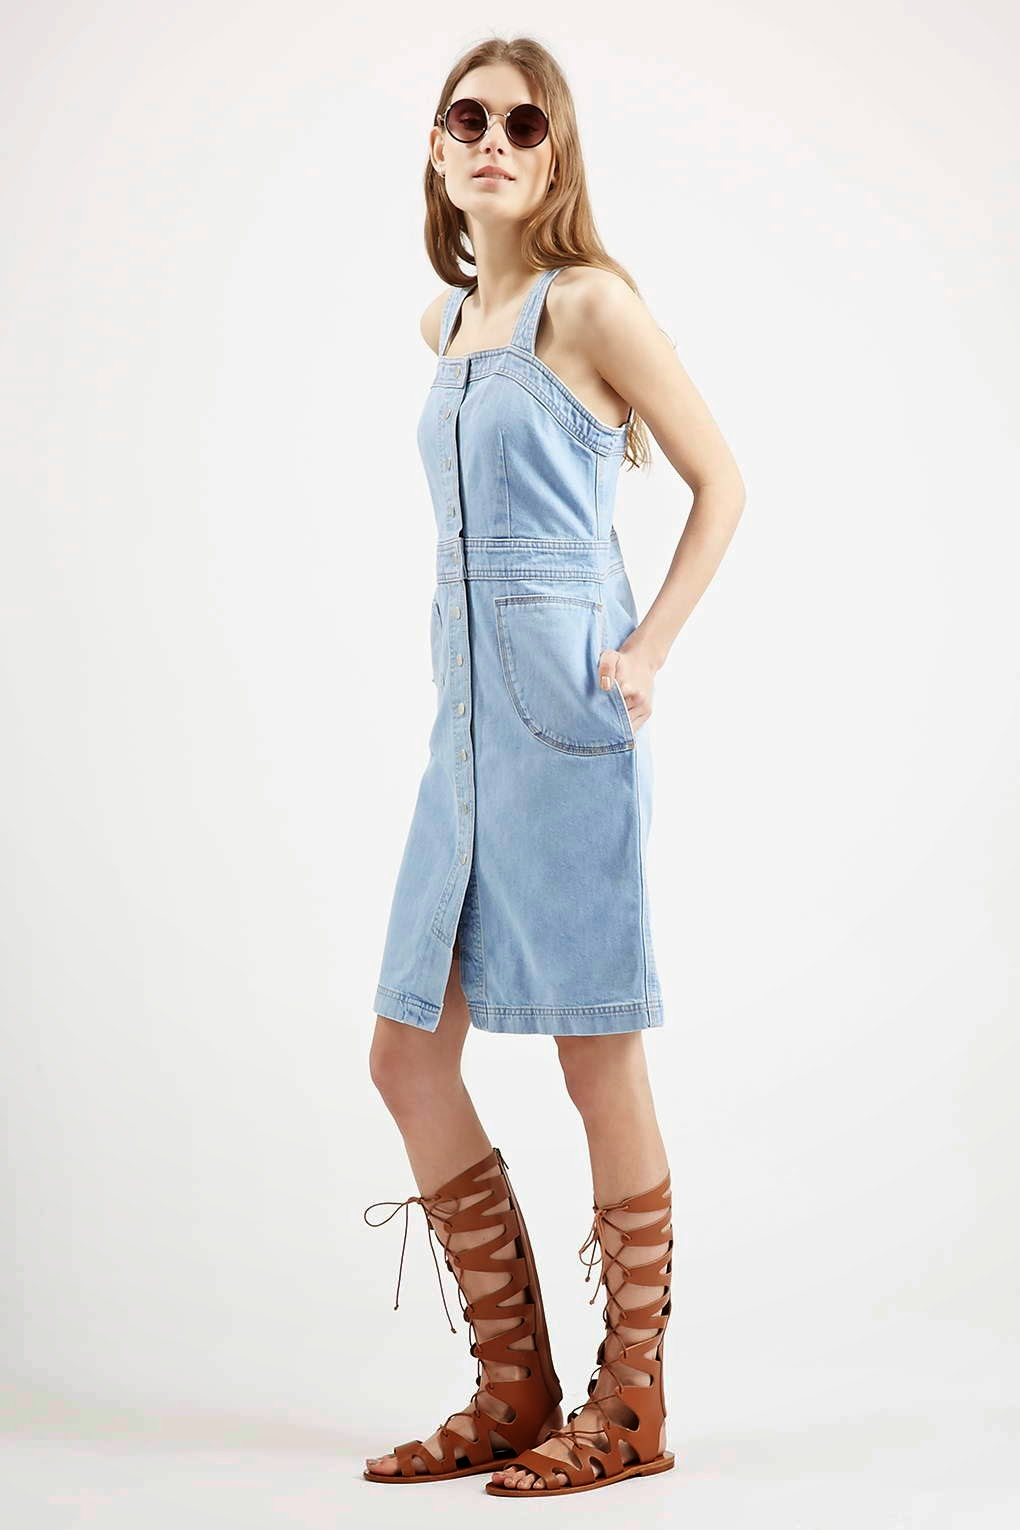 topshop denim dress, denim pinafore dress, denim button down dress,